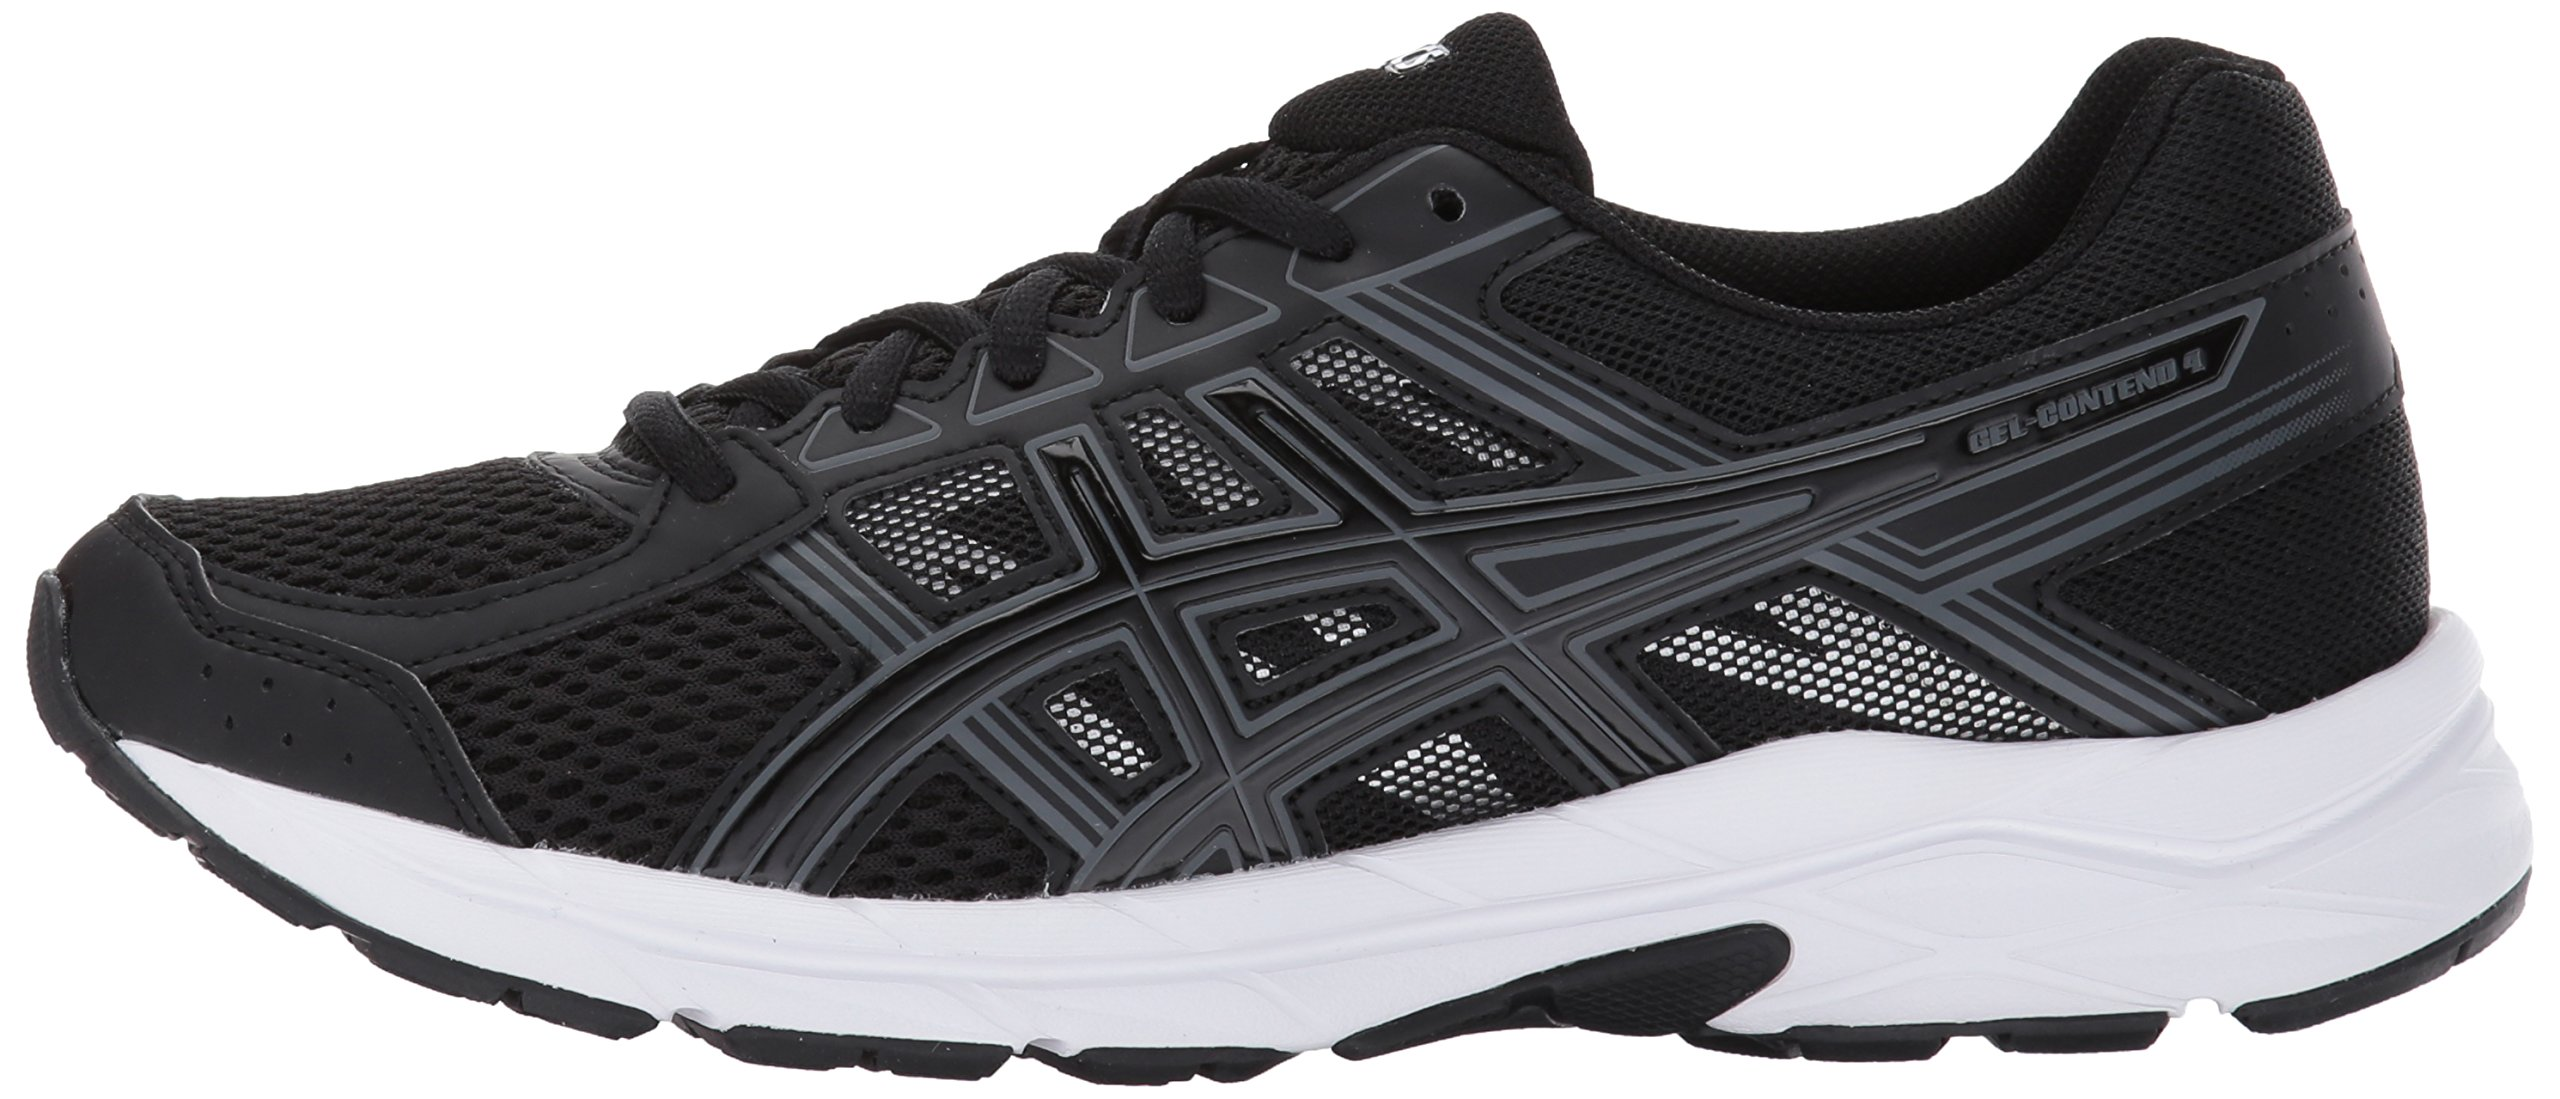 ASICS Womens Gel-Contend 4 Running Shoe, Black/Carbon, 6 D US by ASICS (Image #5)